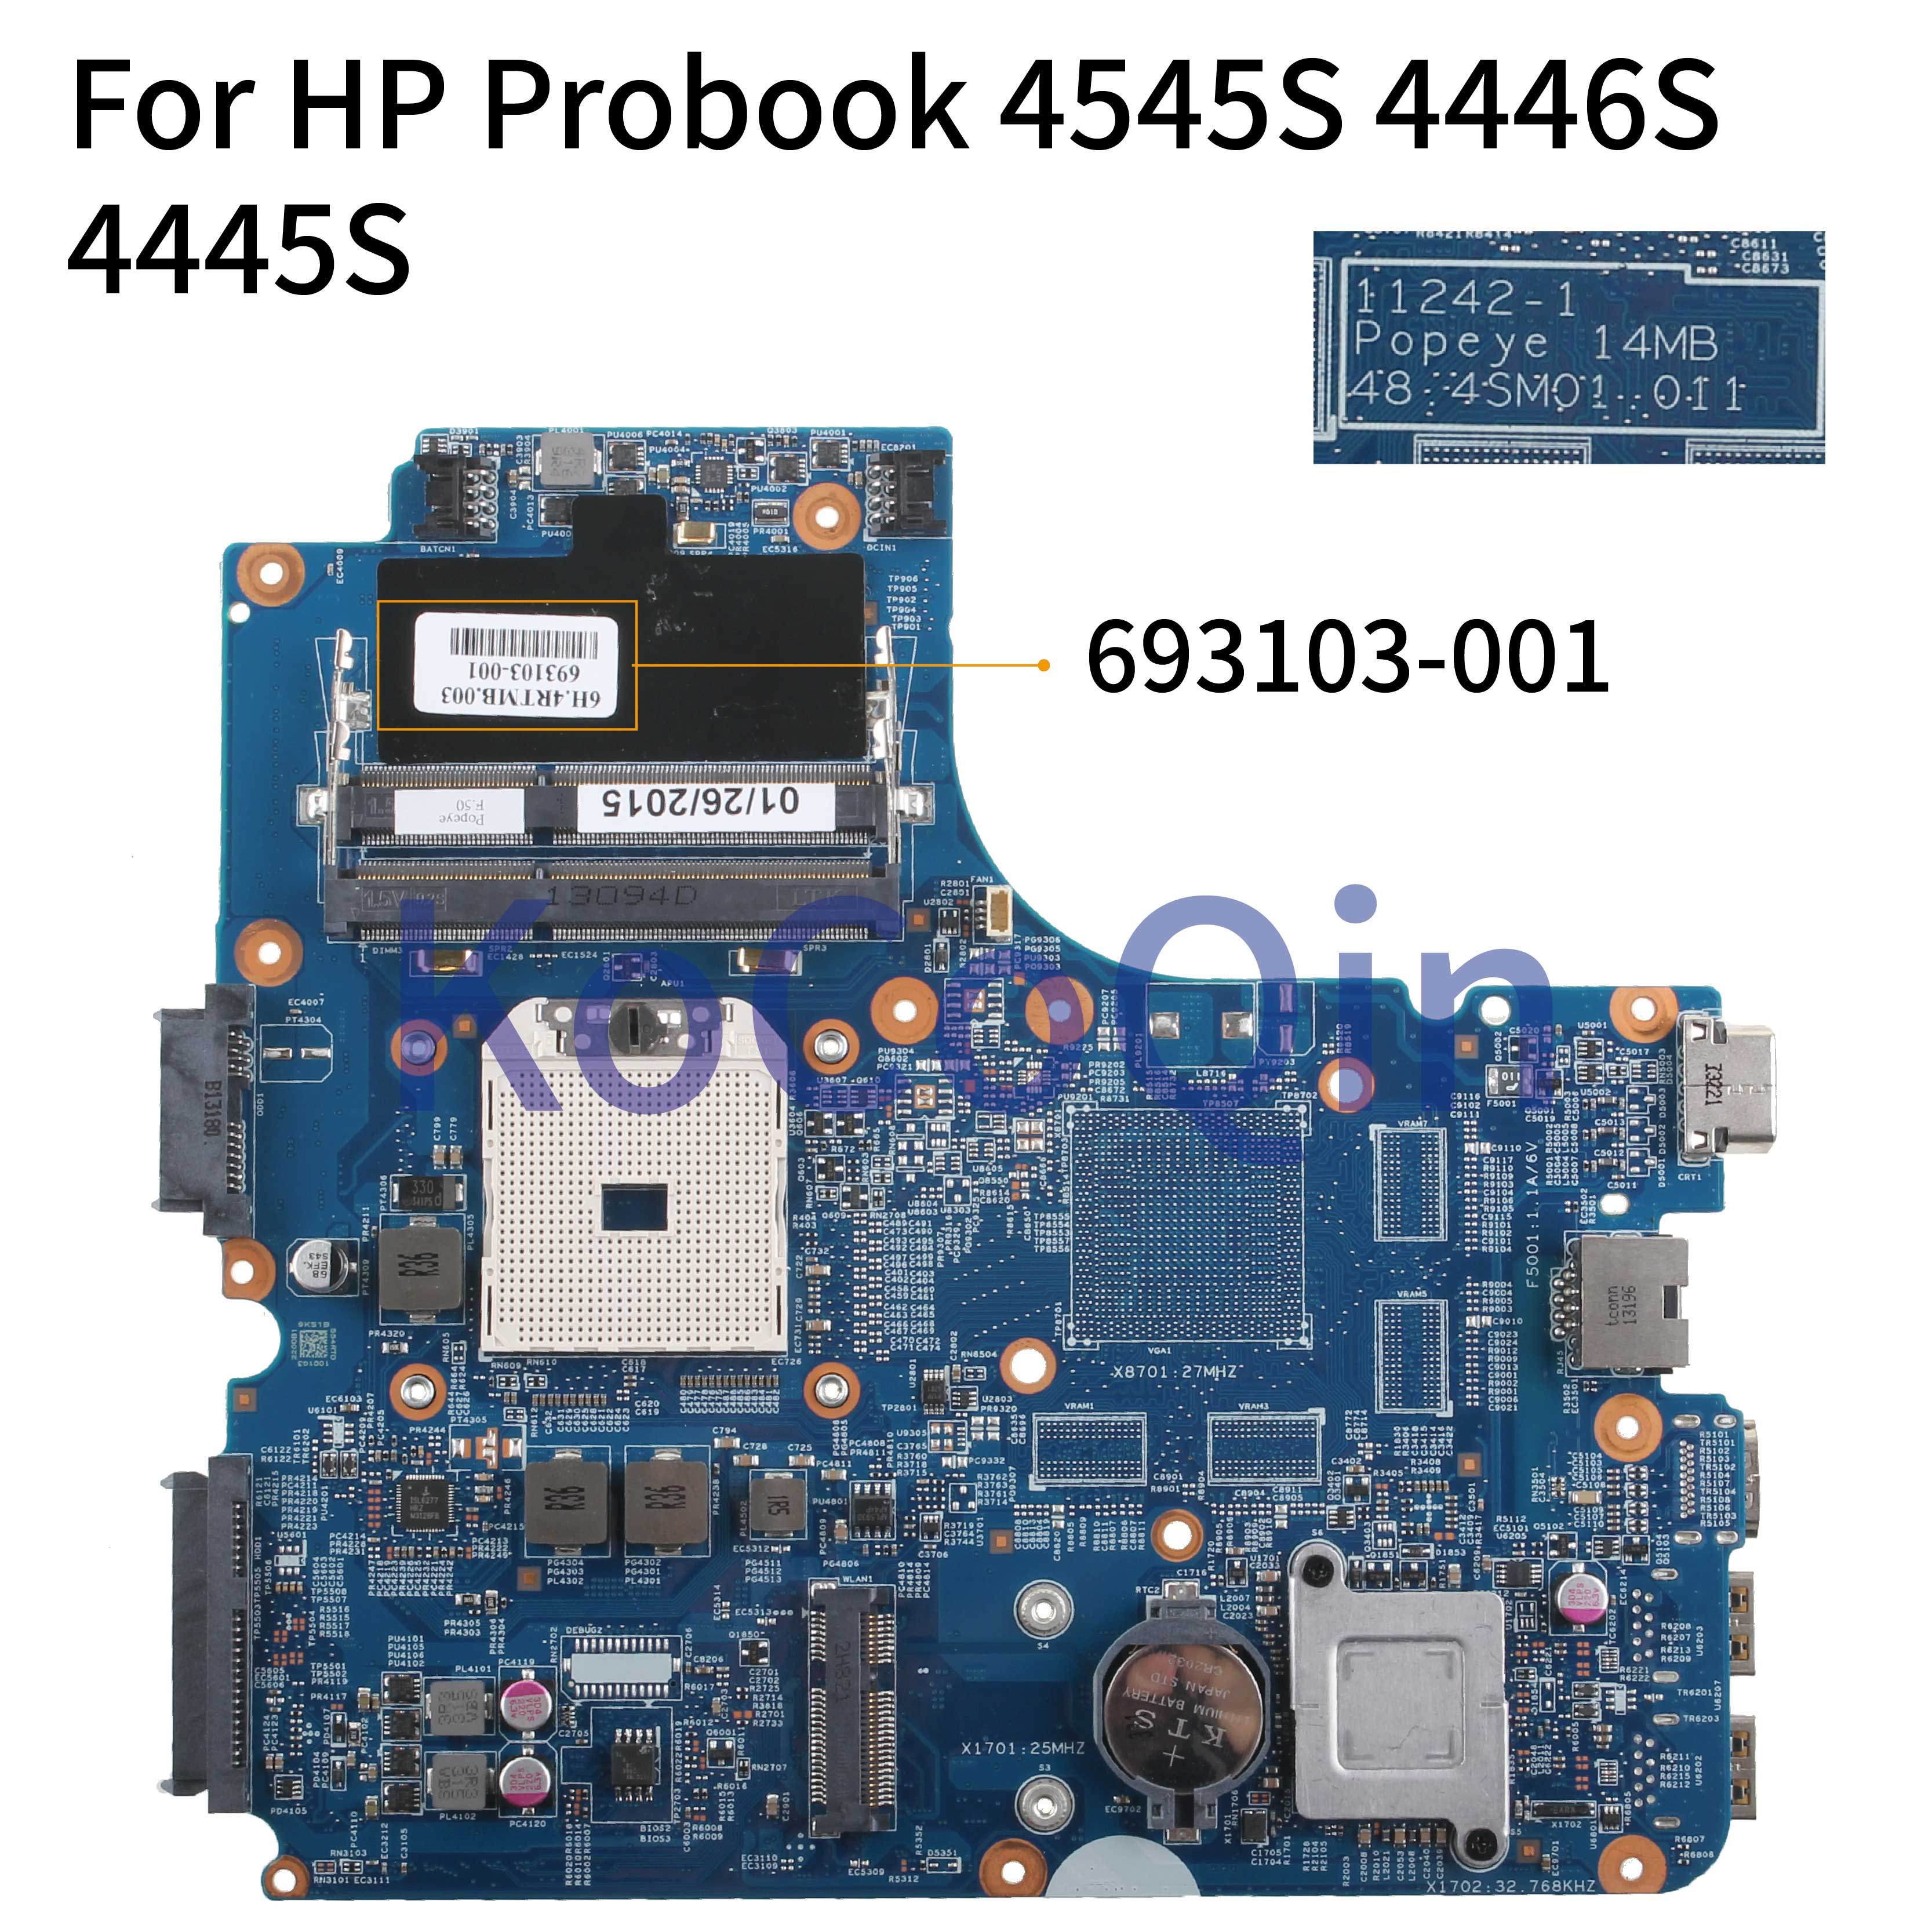 KoCoQin Laptop Motherboard For HP Probook 4545S 4445S 4540S 4440S Mainboard 693103-001 693103-501 11242-1 48.4SM01.011 AMD